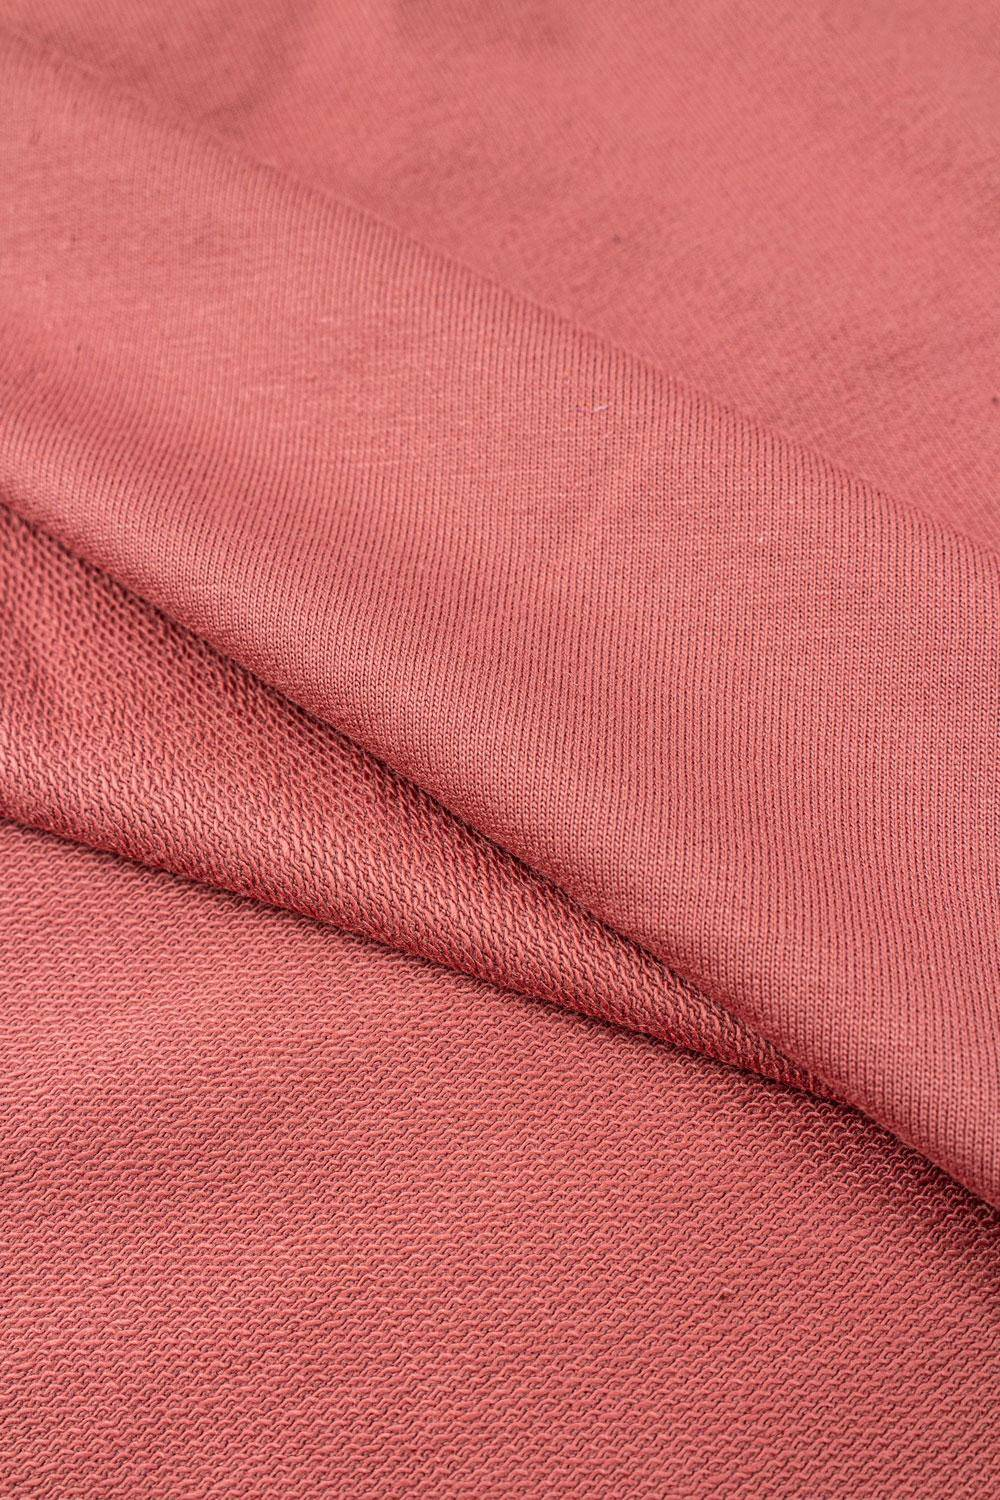 Knit - French Terry - Dirty Pink - 180 cm - 200 g/m2